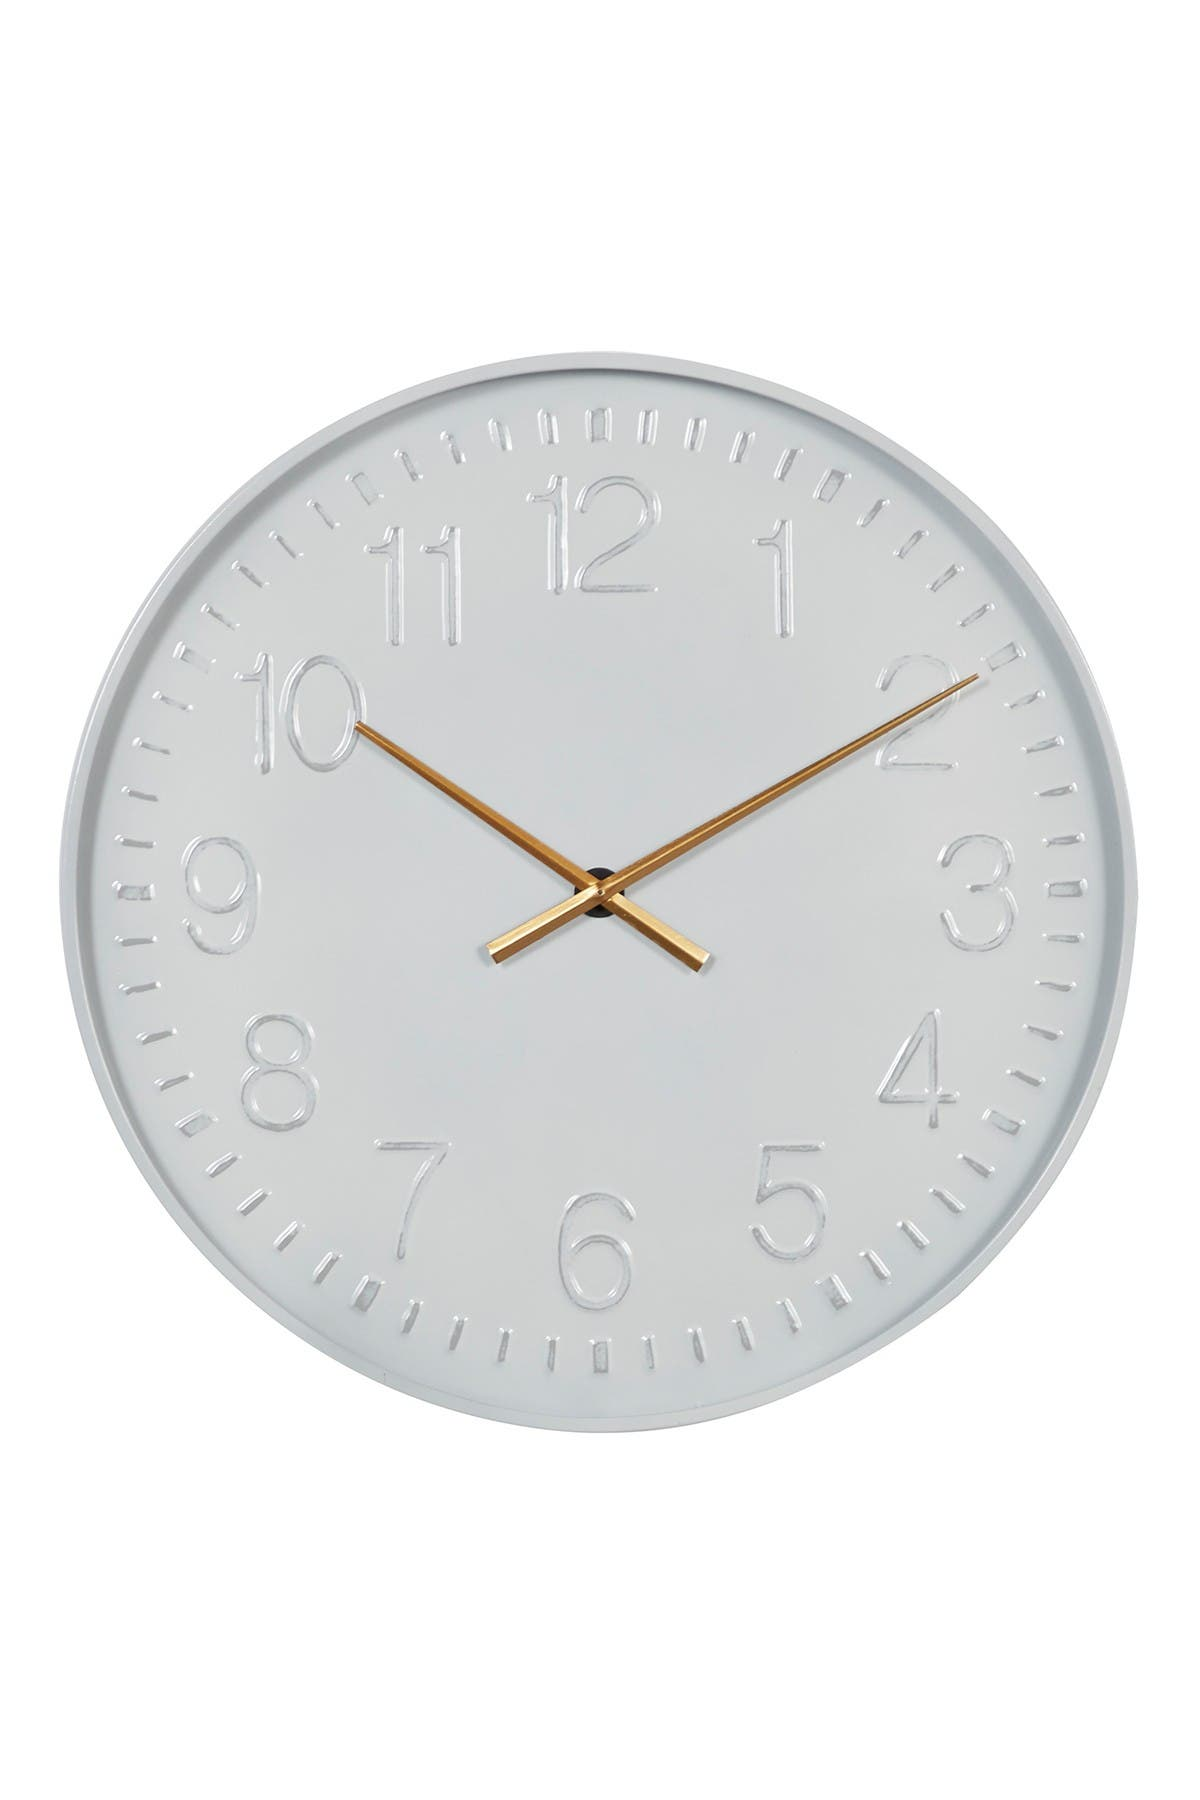 Willow Row Metal Minimalist Wall Clock w/ Numbers, AA Battery-Operated at Nordstrom Rack